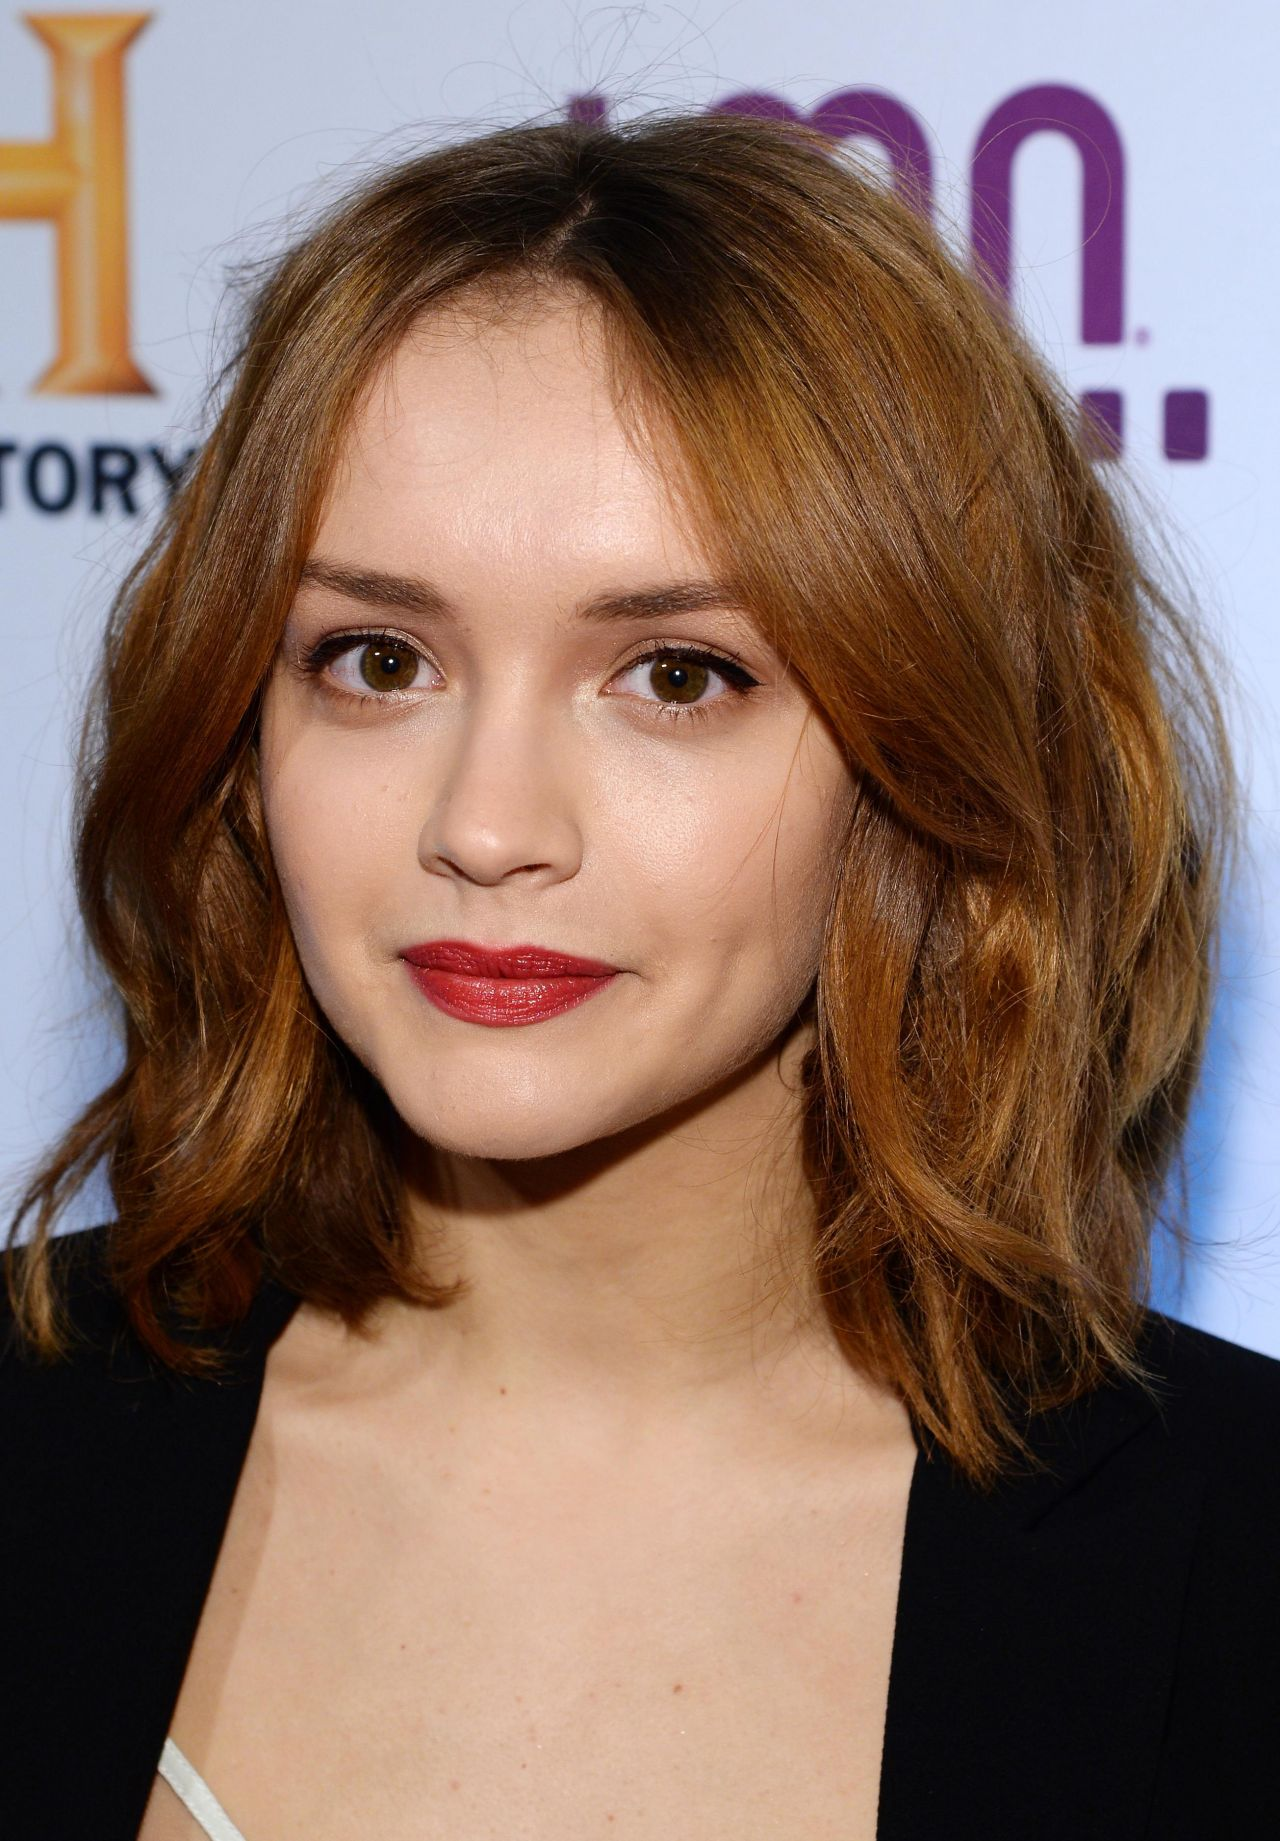 Young Girl Horror Wallpaper Olivia Cooke Hd Wallpapers For Desktop Download